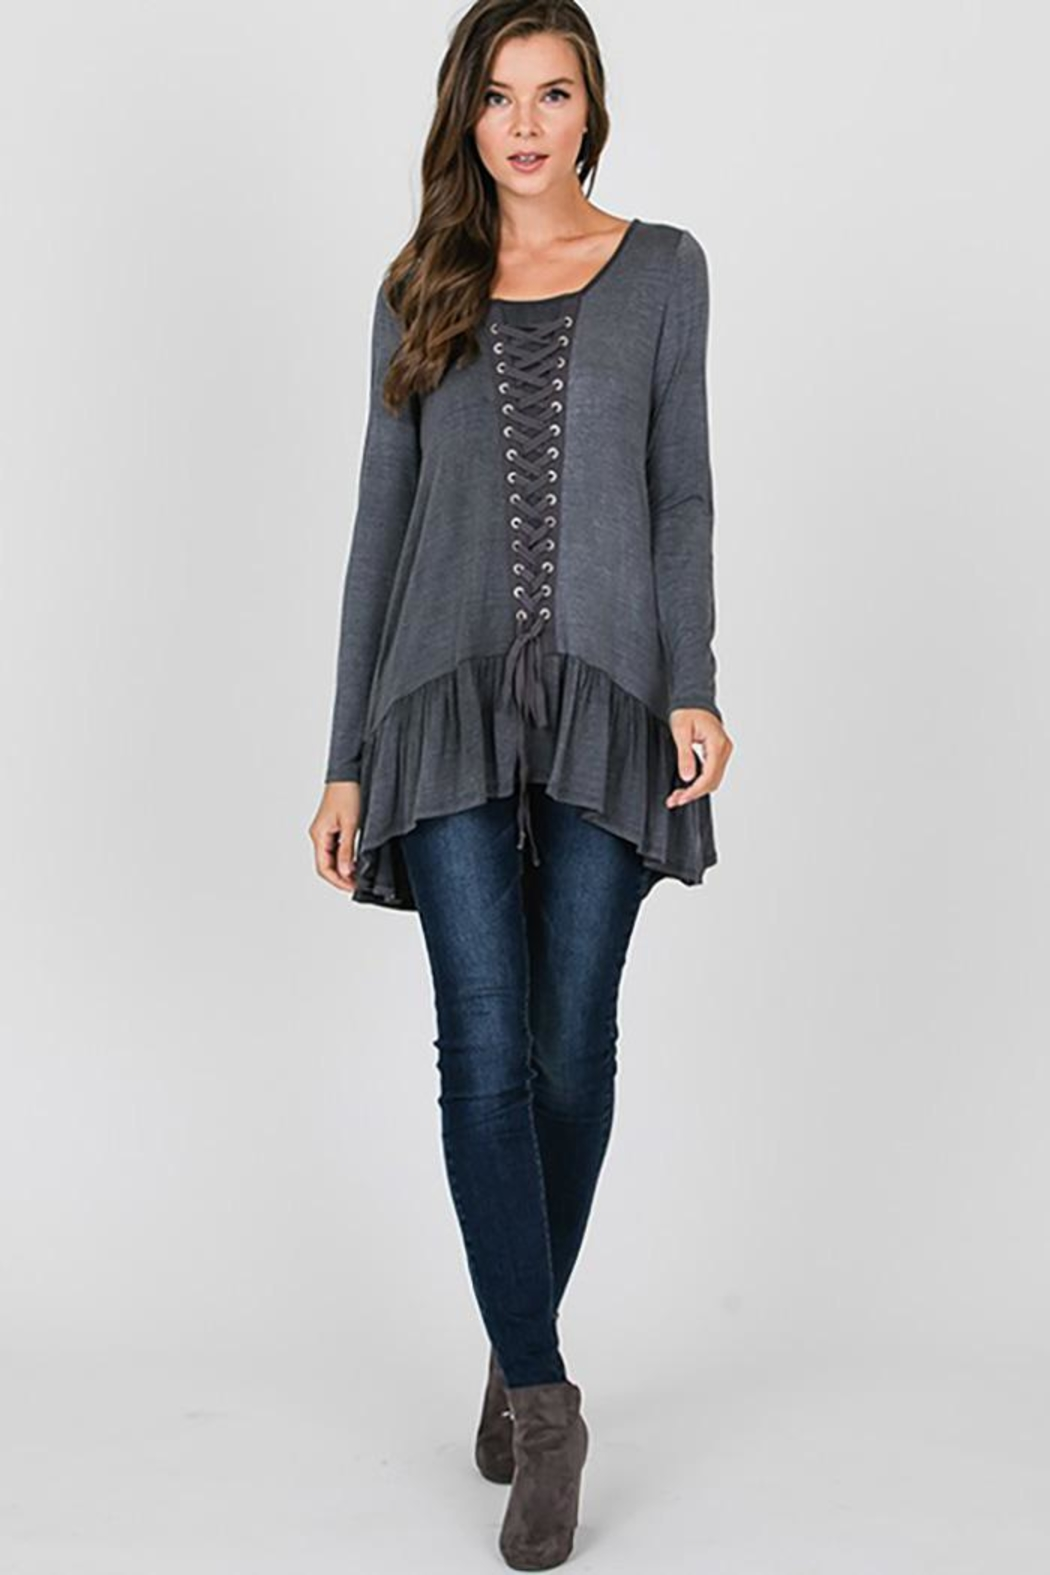 CY Fashion Grommet Lace Up Long Sleeve - Main Image